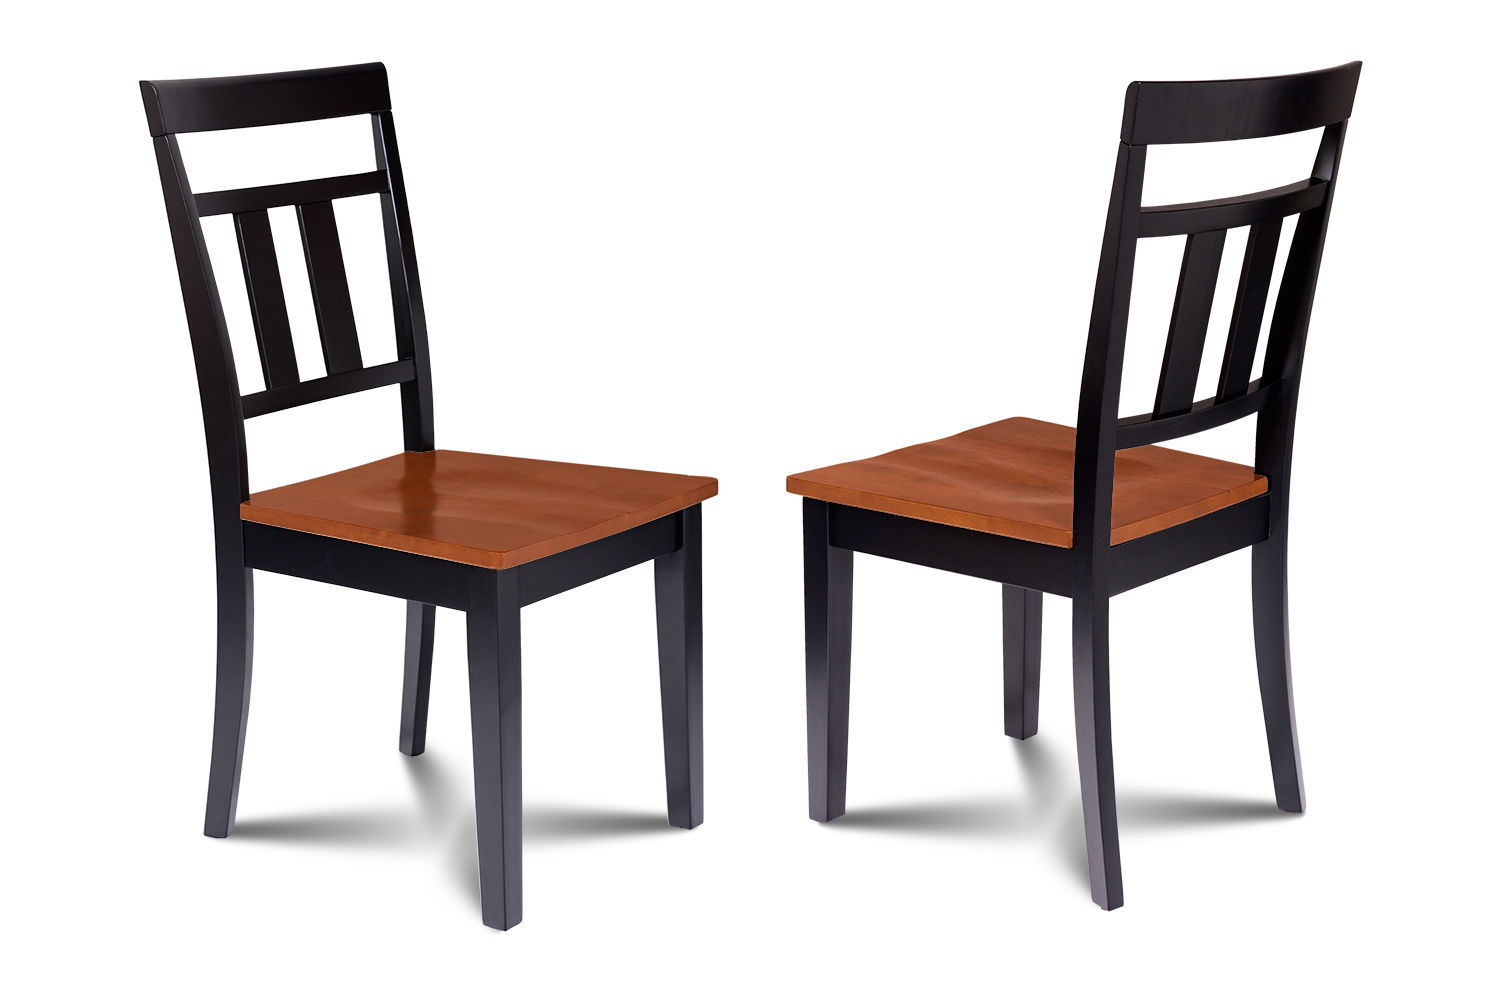 """38"""" x 66"""" DINING ROOM TABLE SET W/. 18"""" LEAF & WOODEN CHAIRS IN BLACK & CHERRY"""